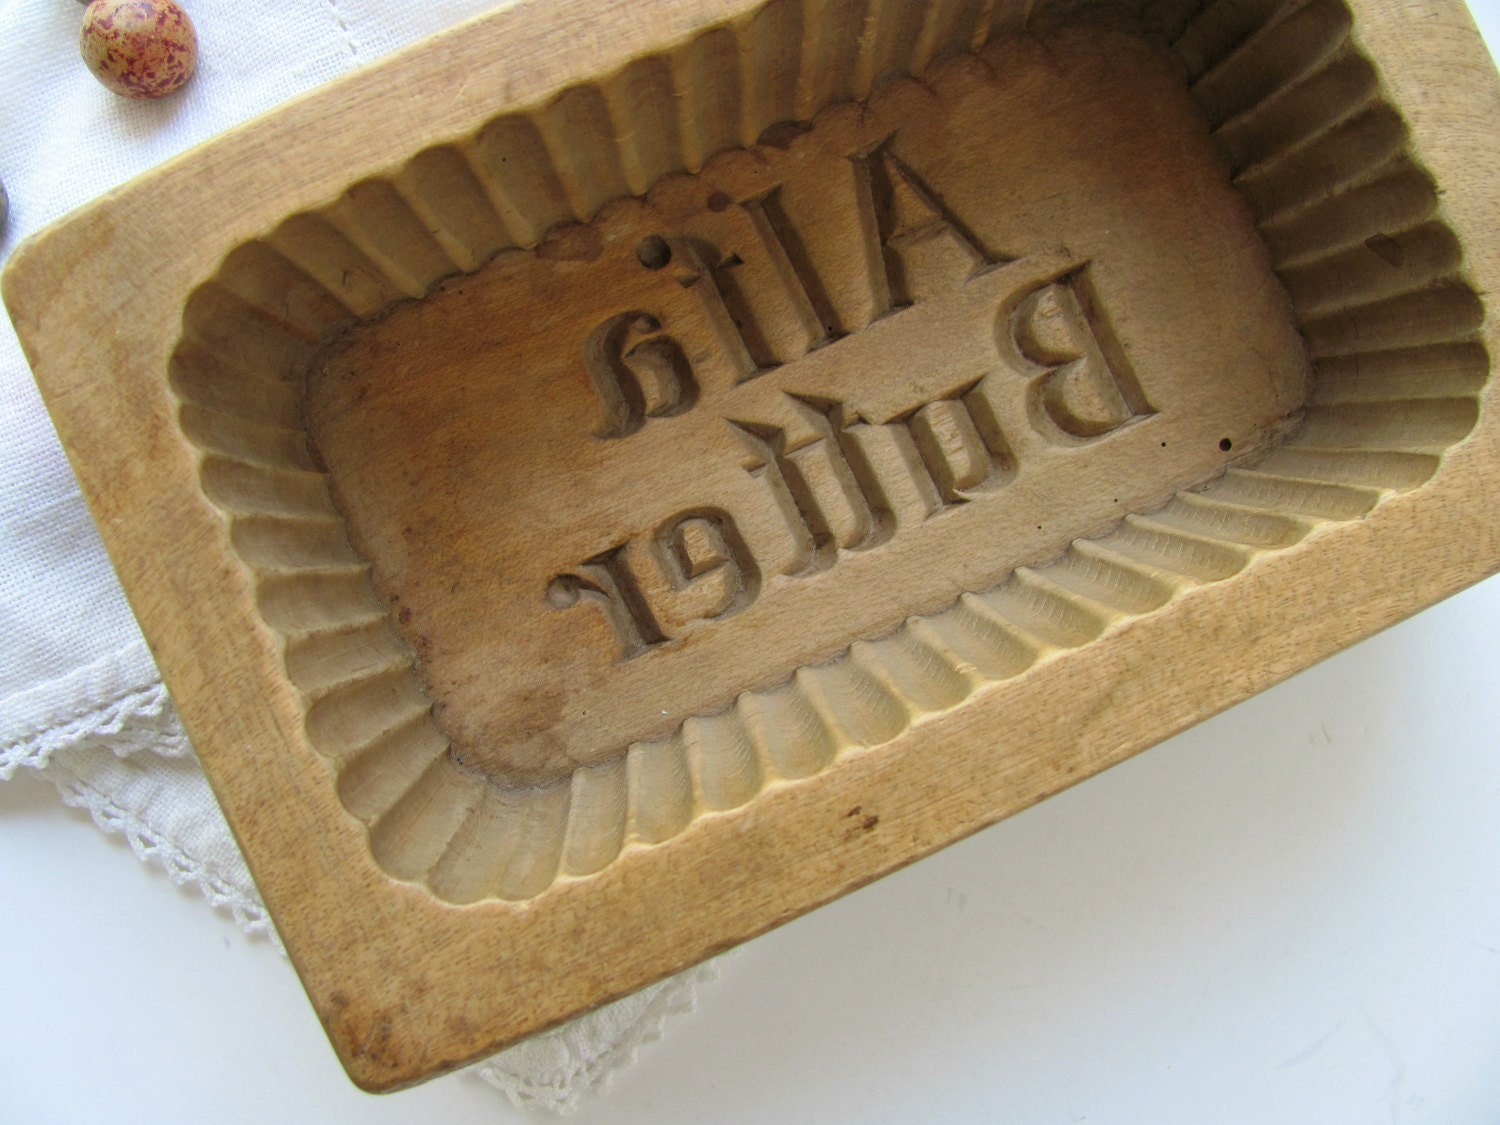 Vintage Alfa Butter Mold Wooden Press Stamp Carved Wood One